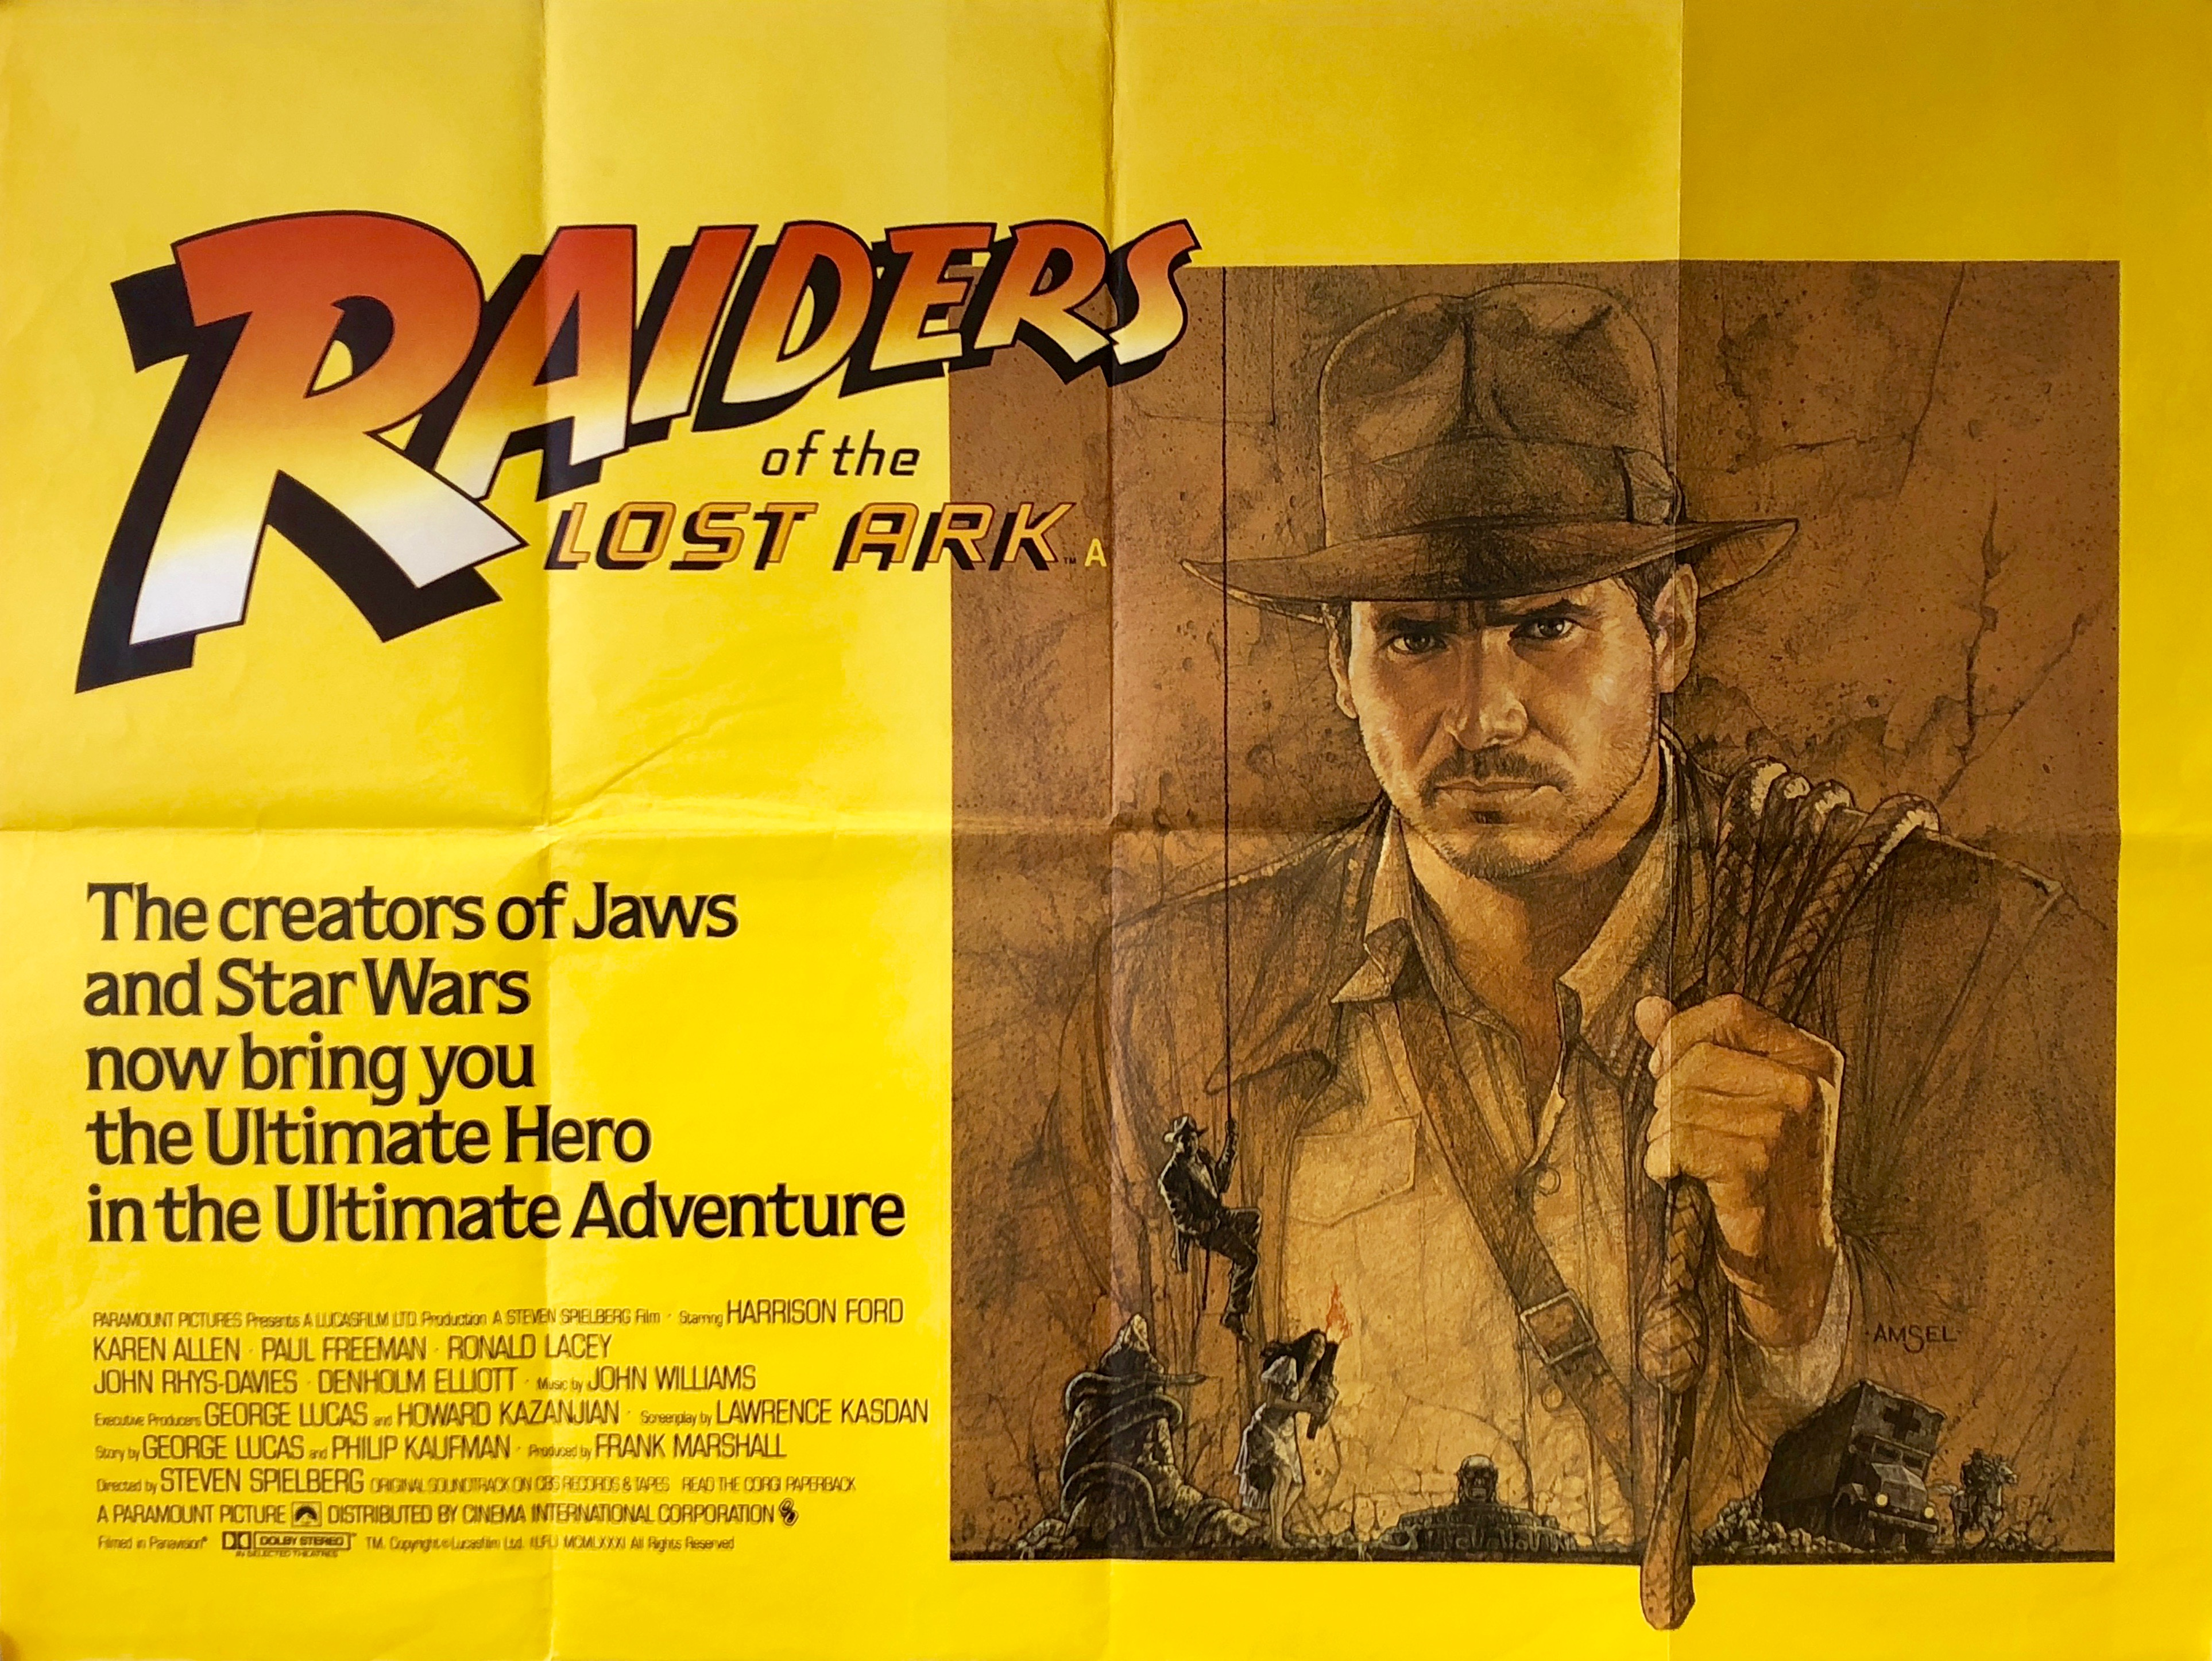 Raiders-of-the-Lost-Ark-Movie-Poster